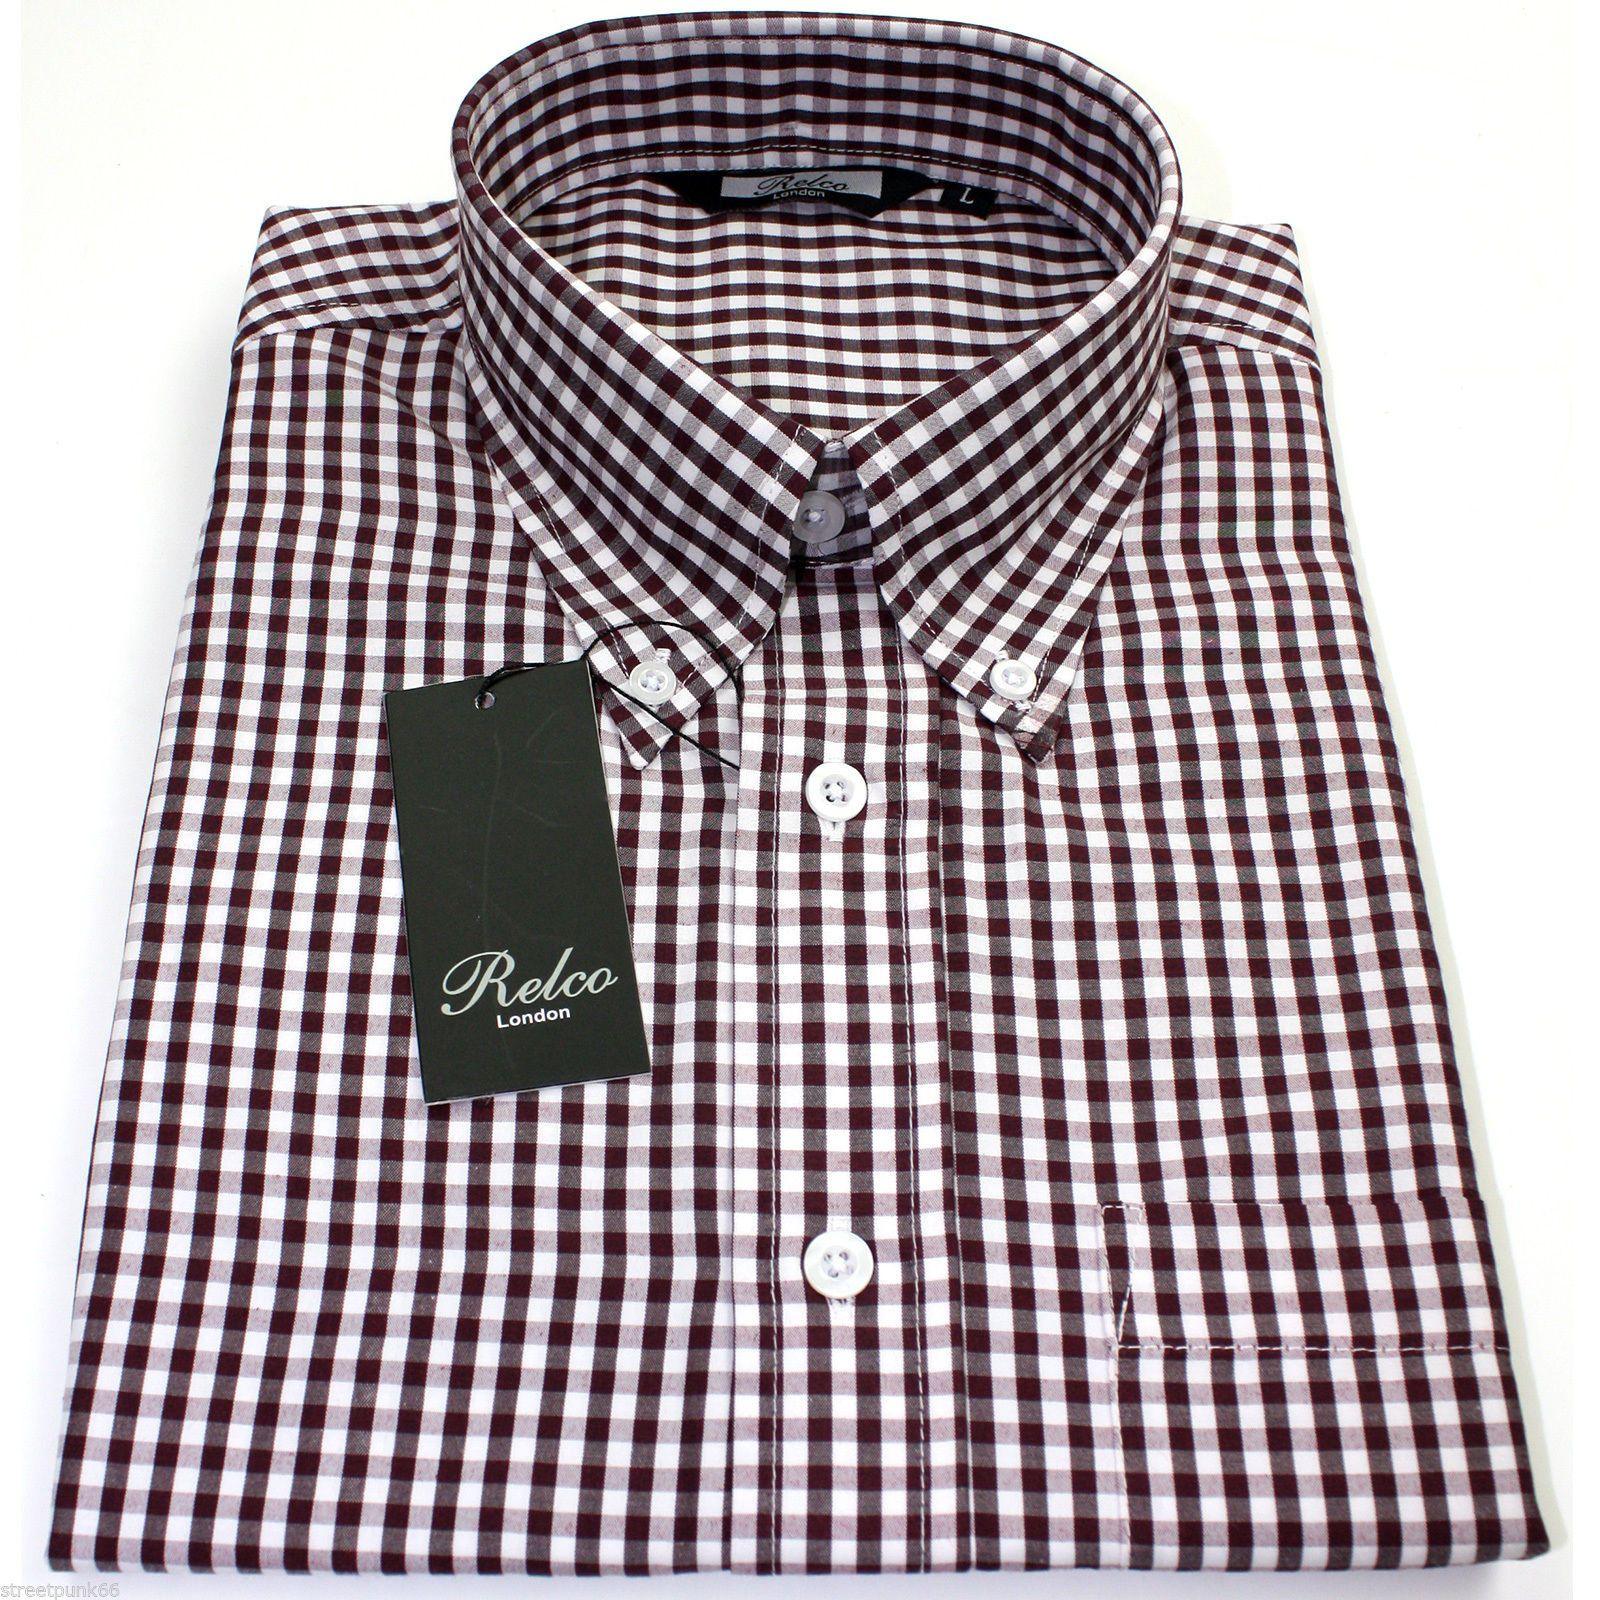 Relco Mens Burgundy White Gingham Short Sleeved Shirt Button Down ...